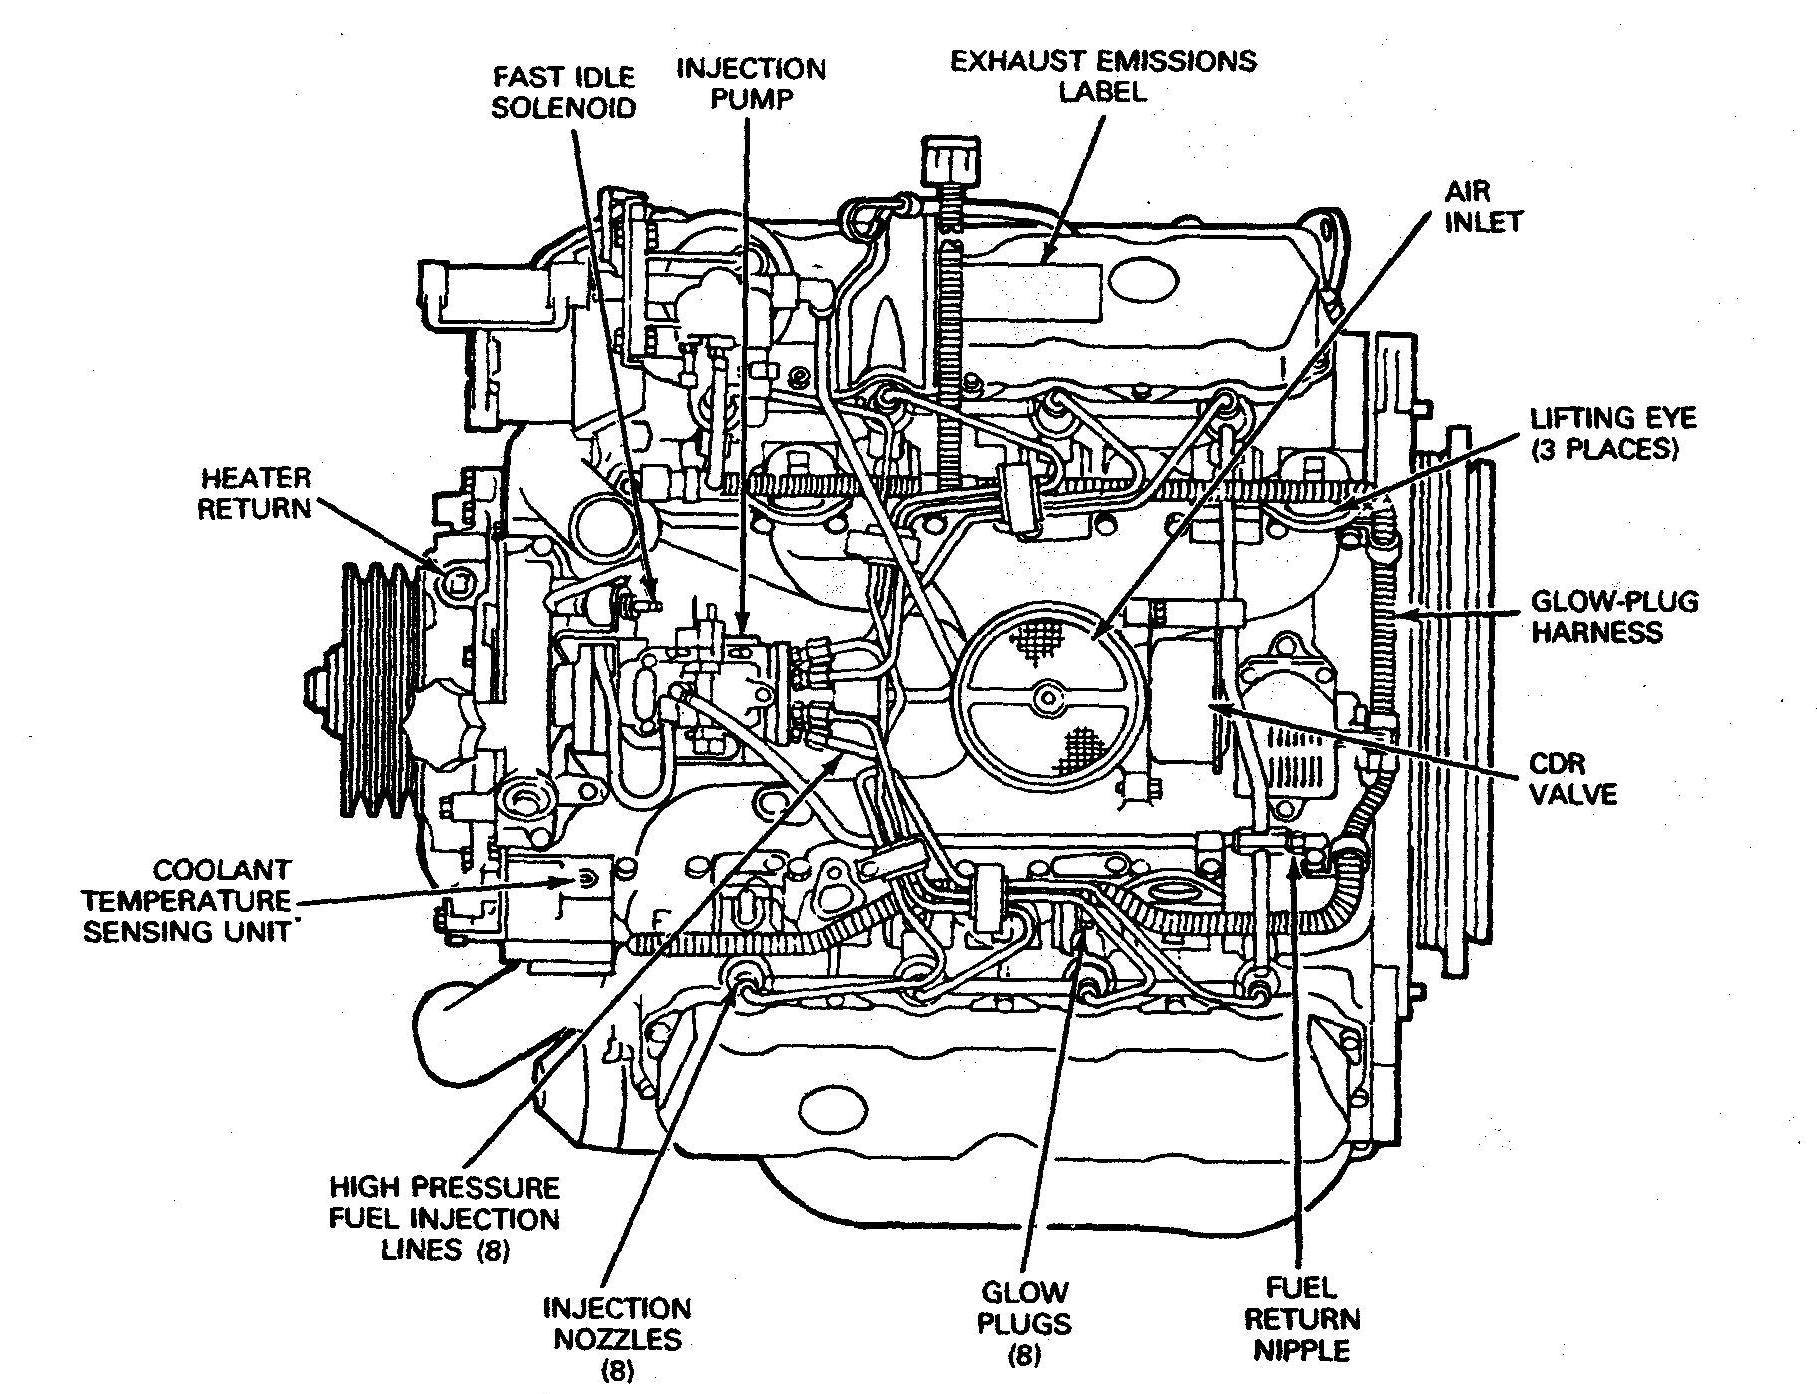 MachiningTolerances also V8 Engine Exploded View Diagram Car besides Chevy 305 Wiring Diagram in addition 1siik Give Diagram Install Powersteering Pump in addition Chevrolet 350 Engine Diagram Air Conditioning System. on 350 small block chevy engine diagram